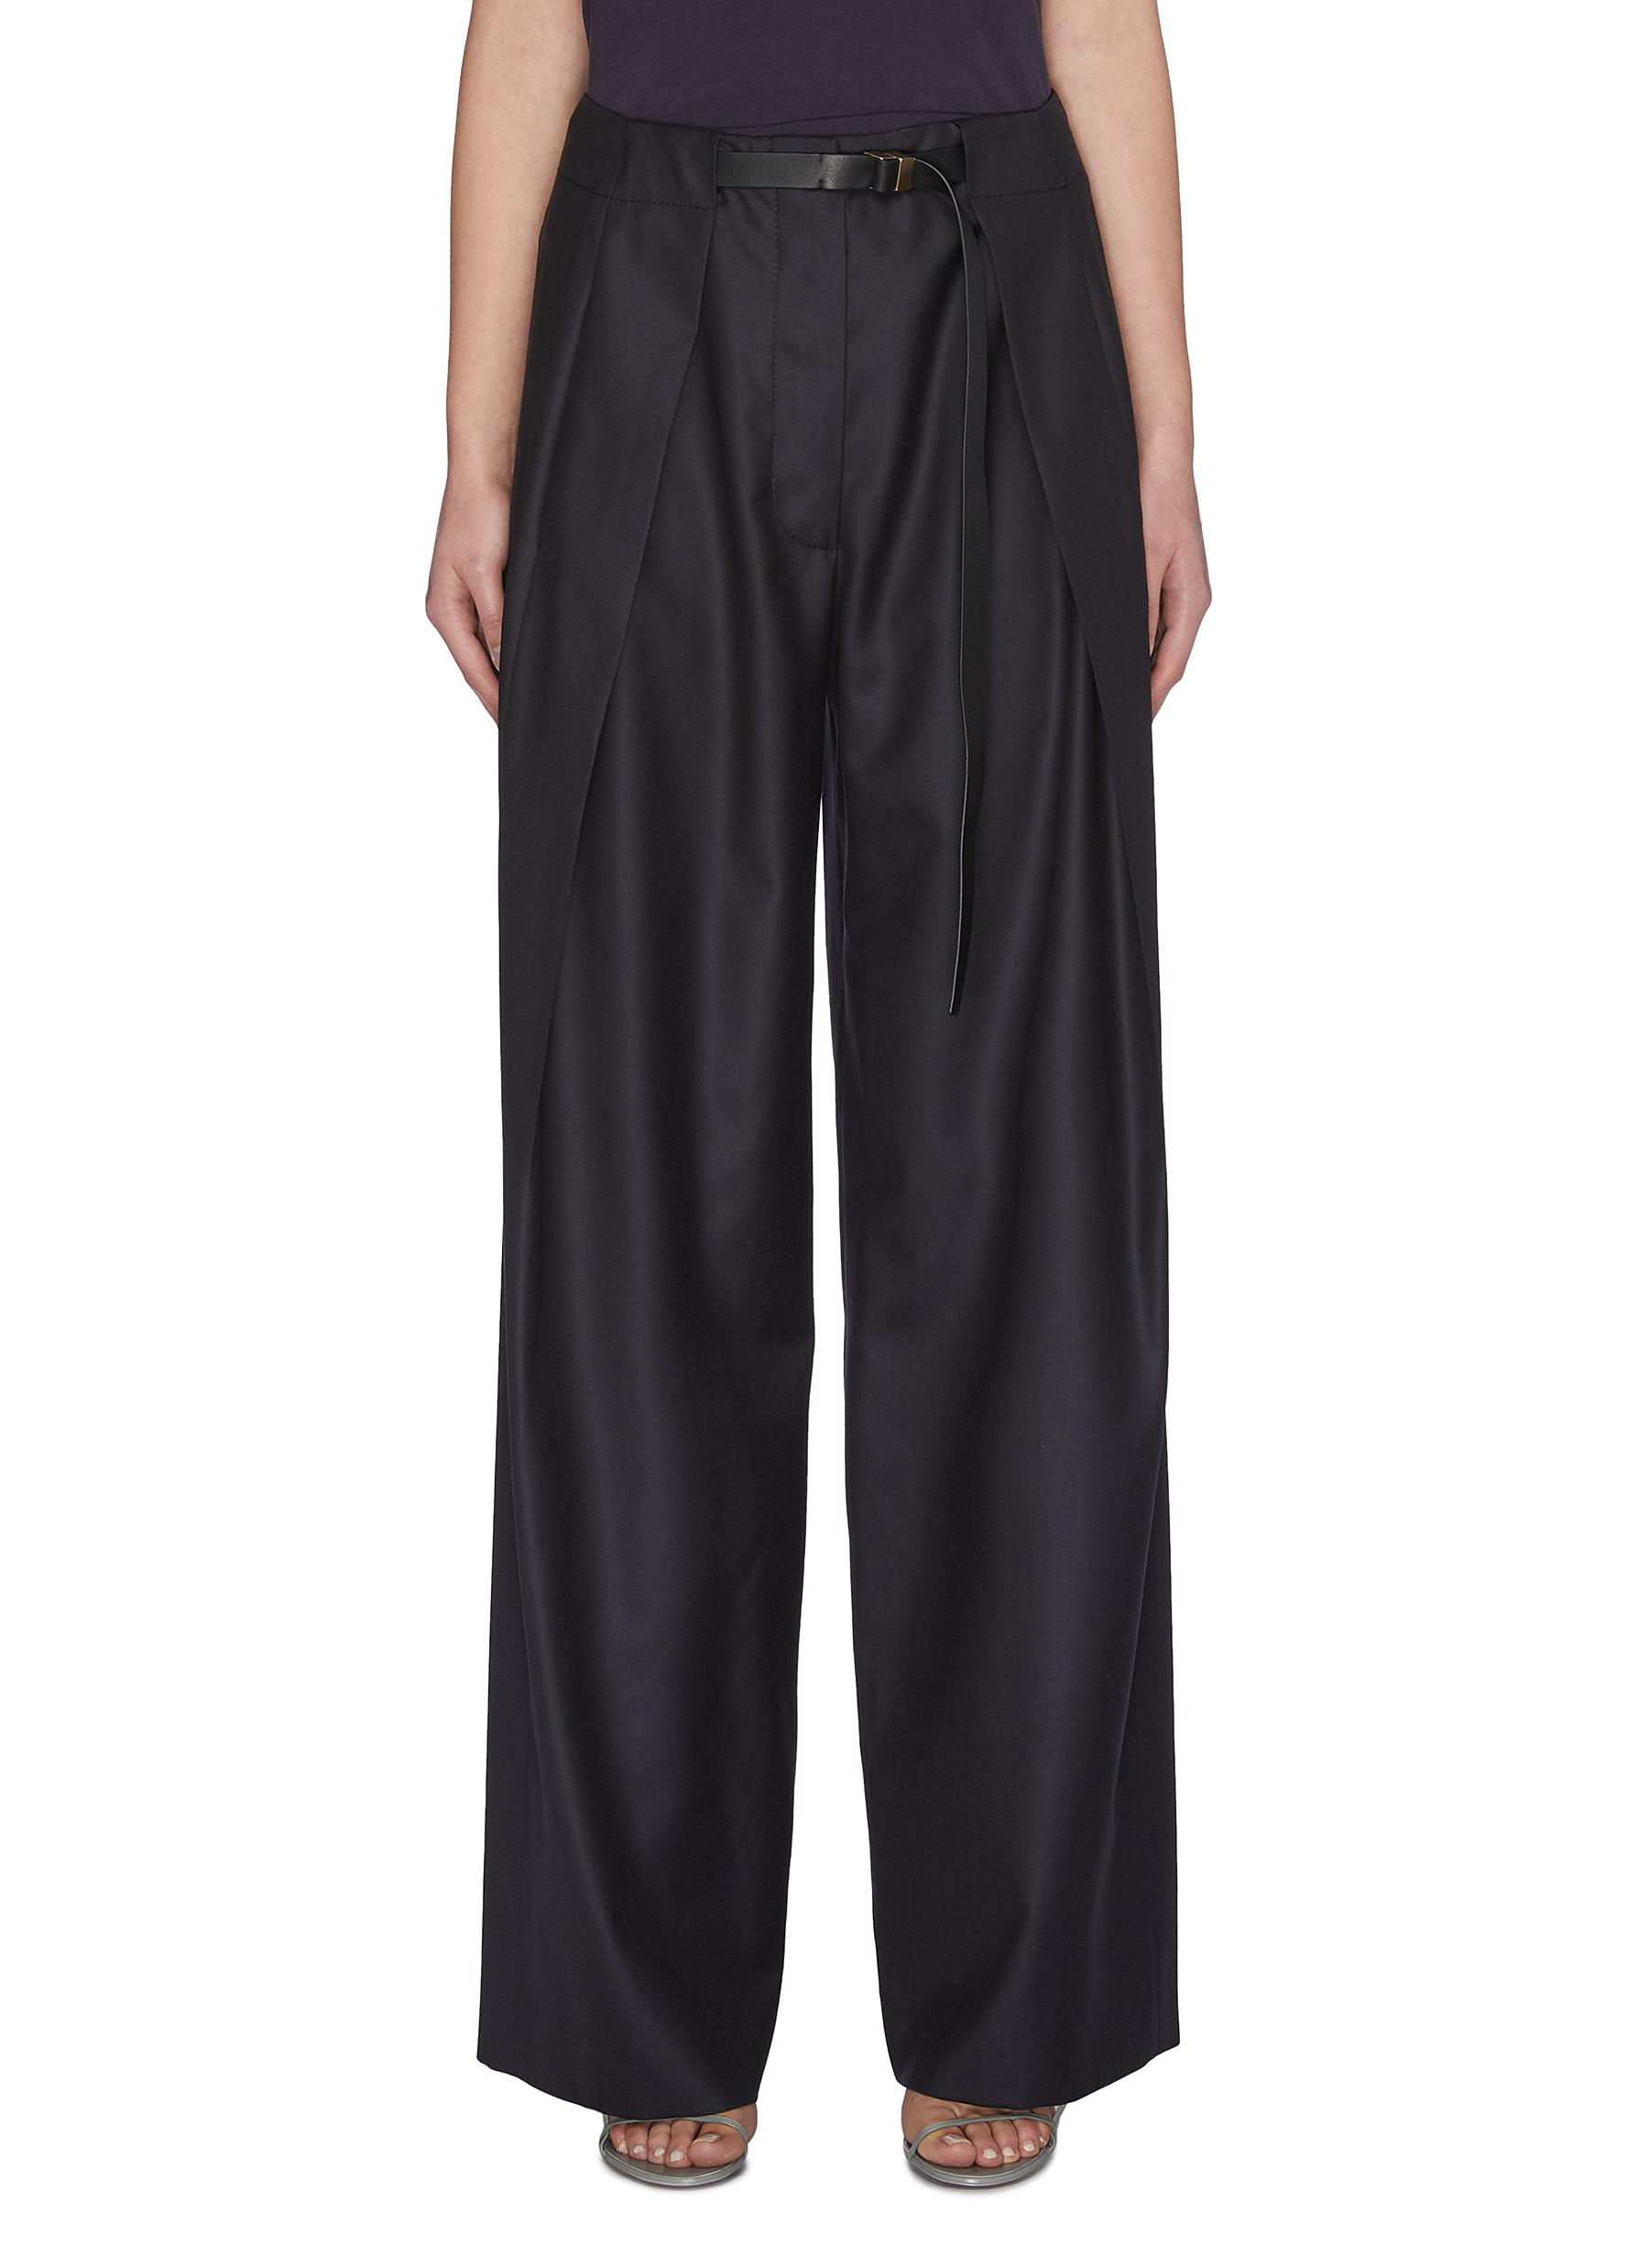 Buy The Row Pants & Shorts 'Brona' belted virgin wool crepe wide leg pants